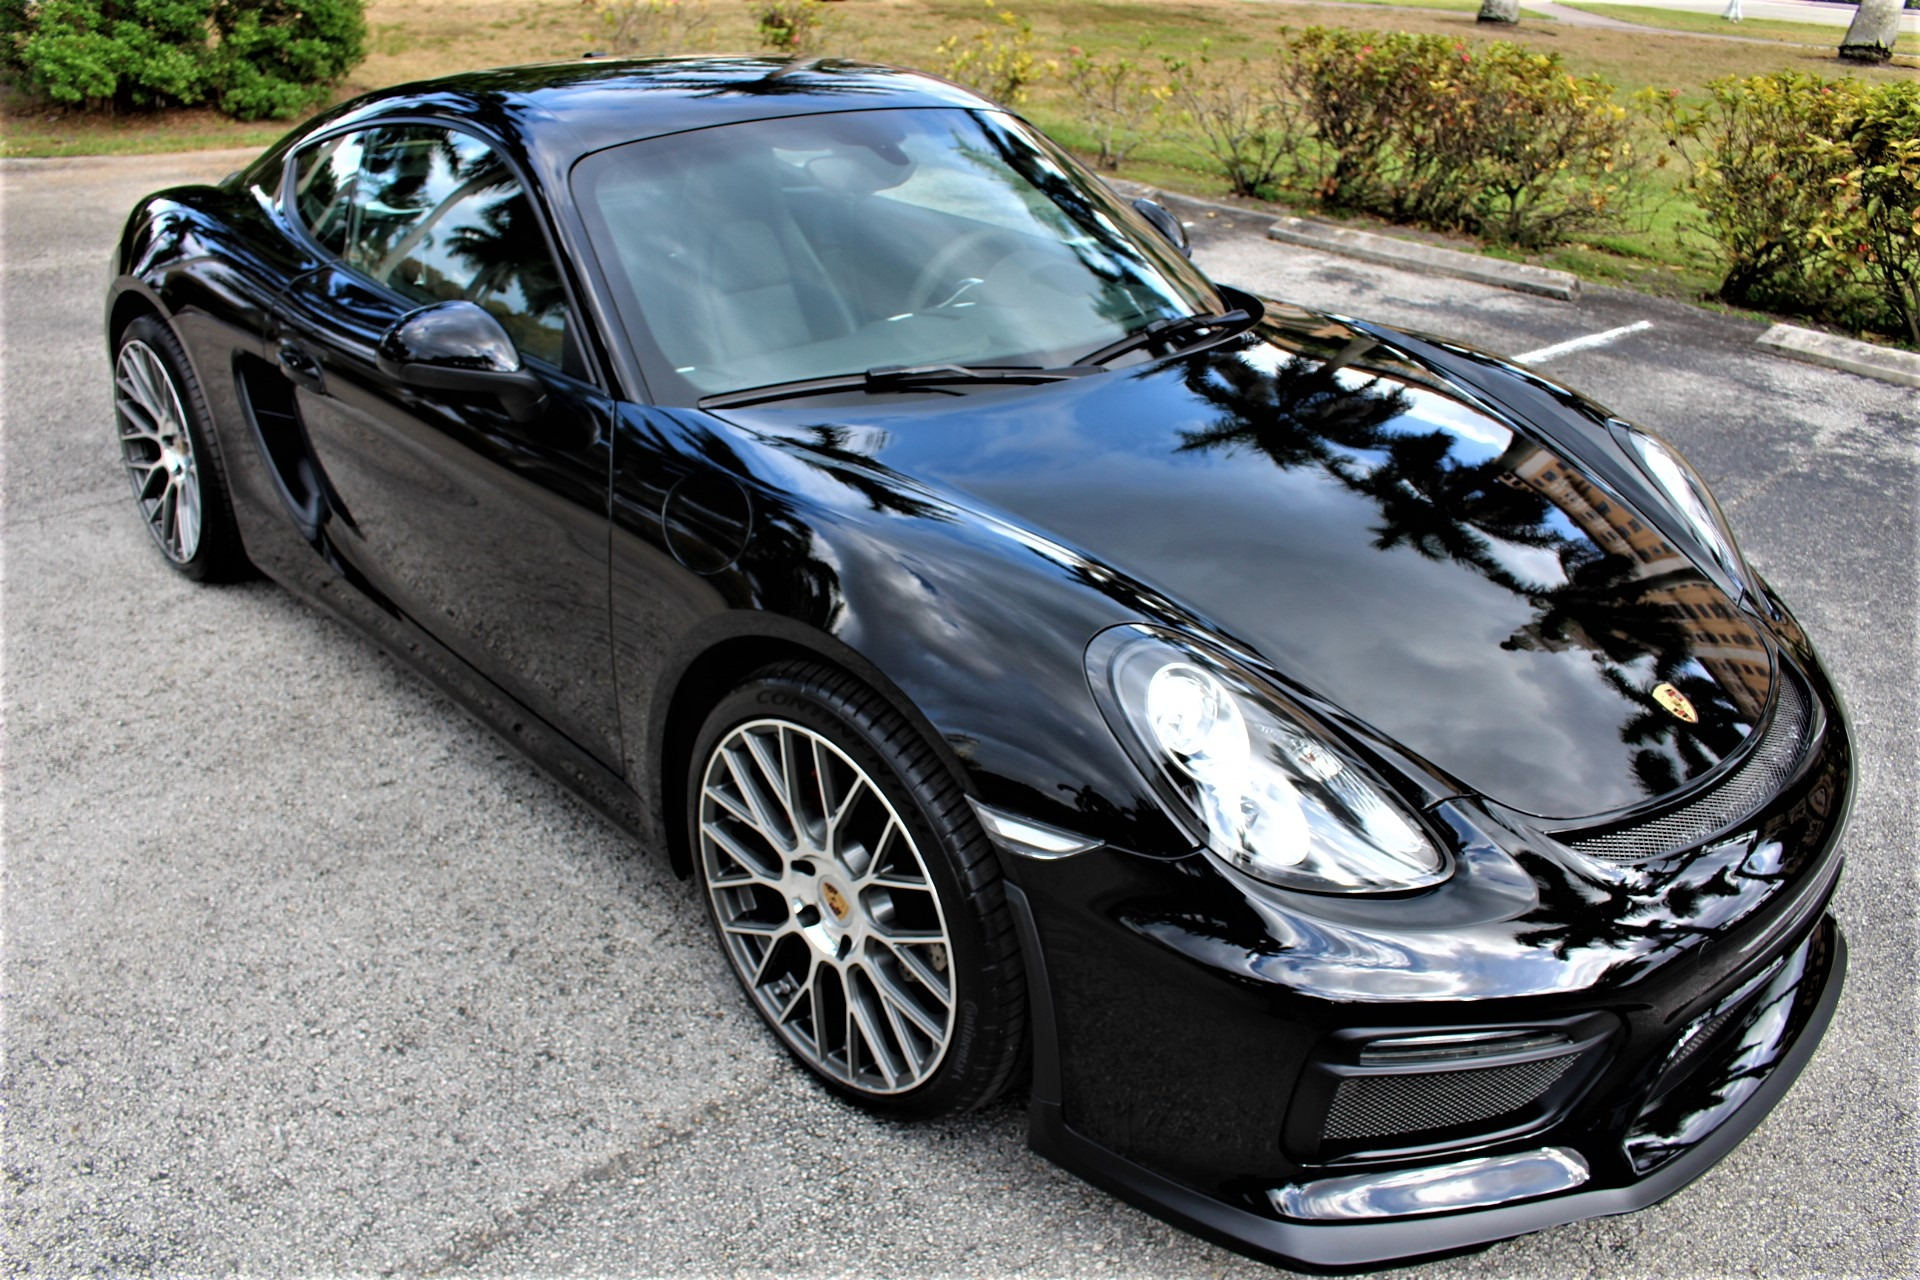 Used 2014 Porsche Cayman for sale Sold at The Gables Sports Cars in Miami FL 33146 1